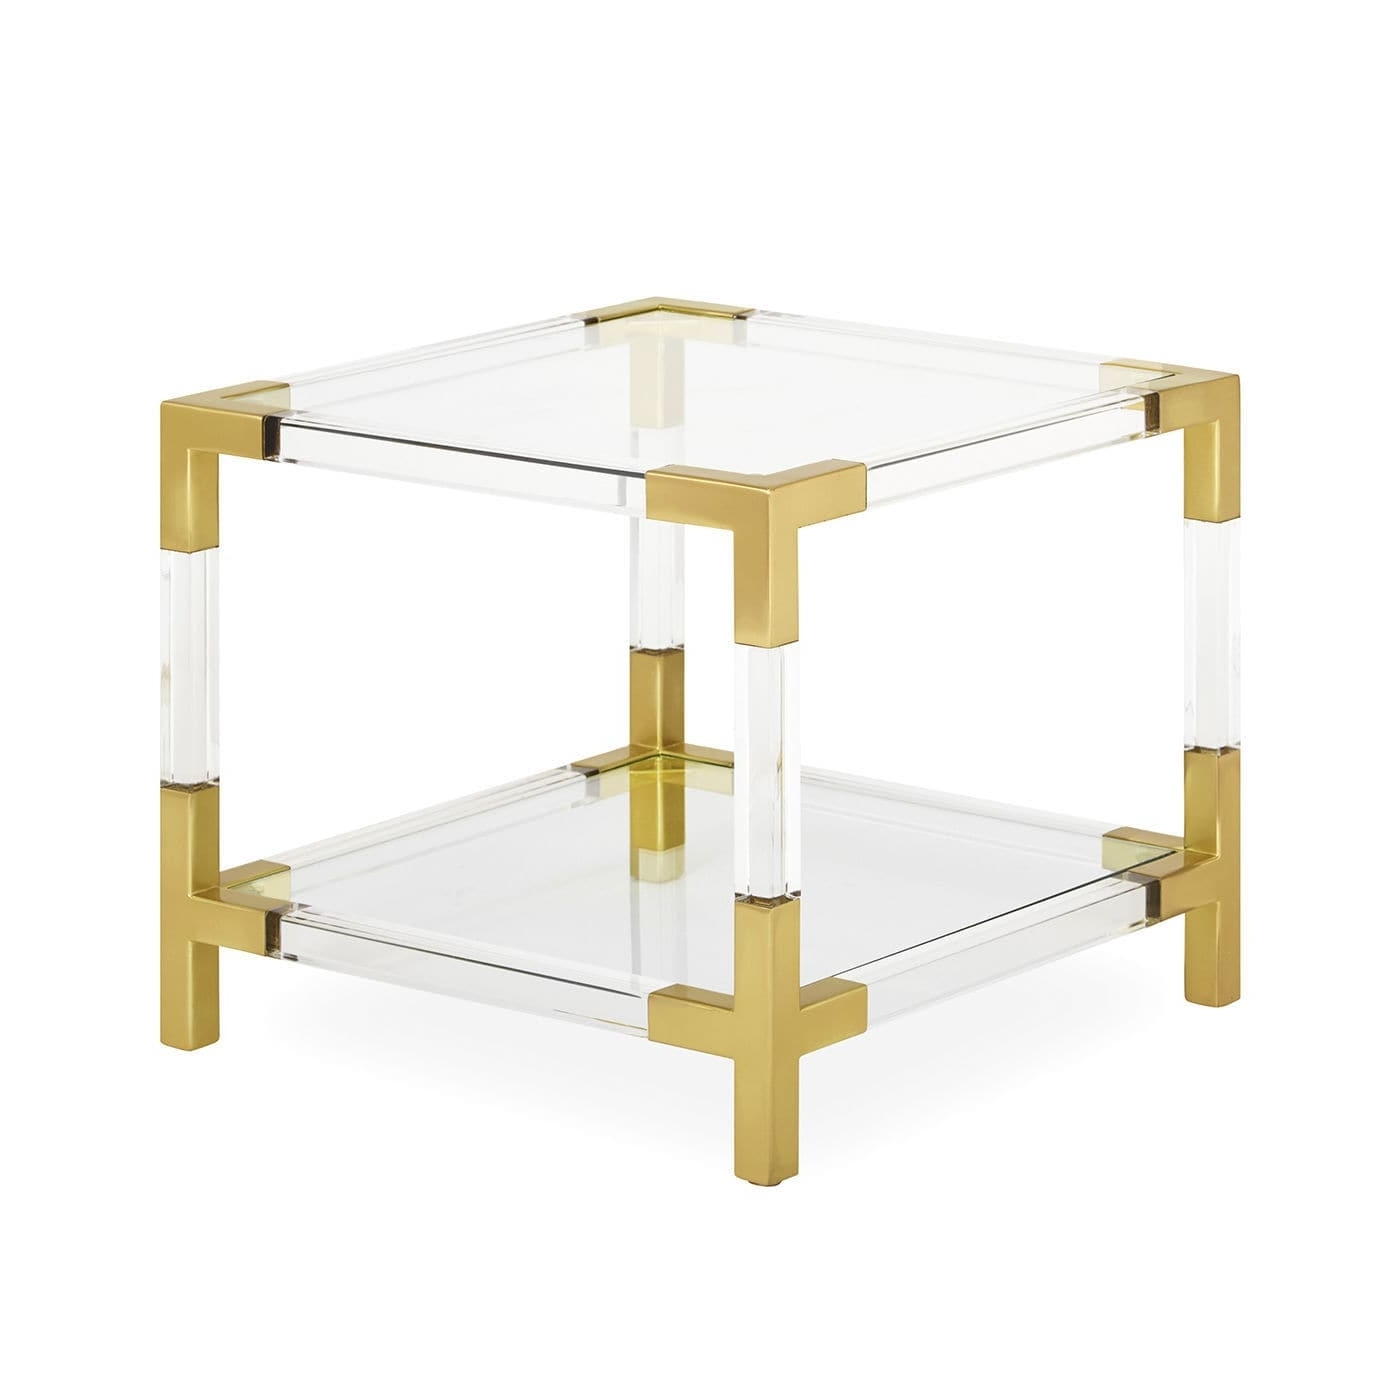 Contemporary Side Table / Glass / Brushed Brass / Acrylic – Jacques Regarding Most Up To Date Acrylic & Brushed Brass Coffee Tables (View 5 of 20)